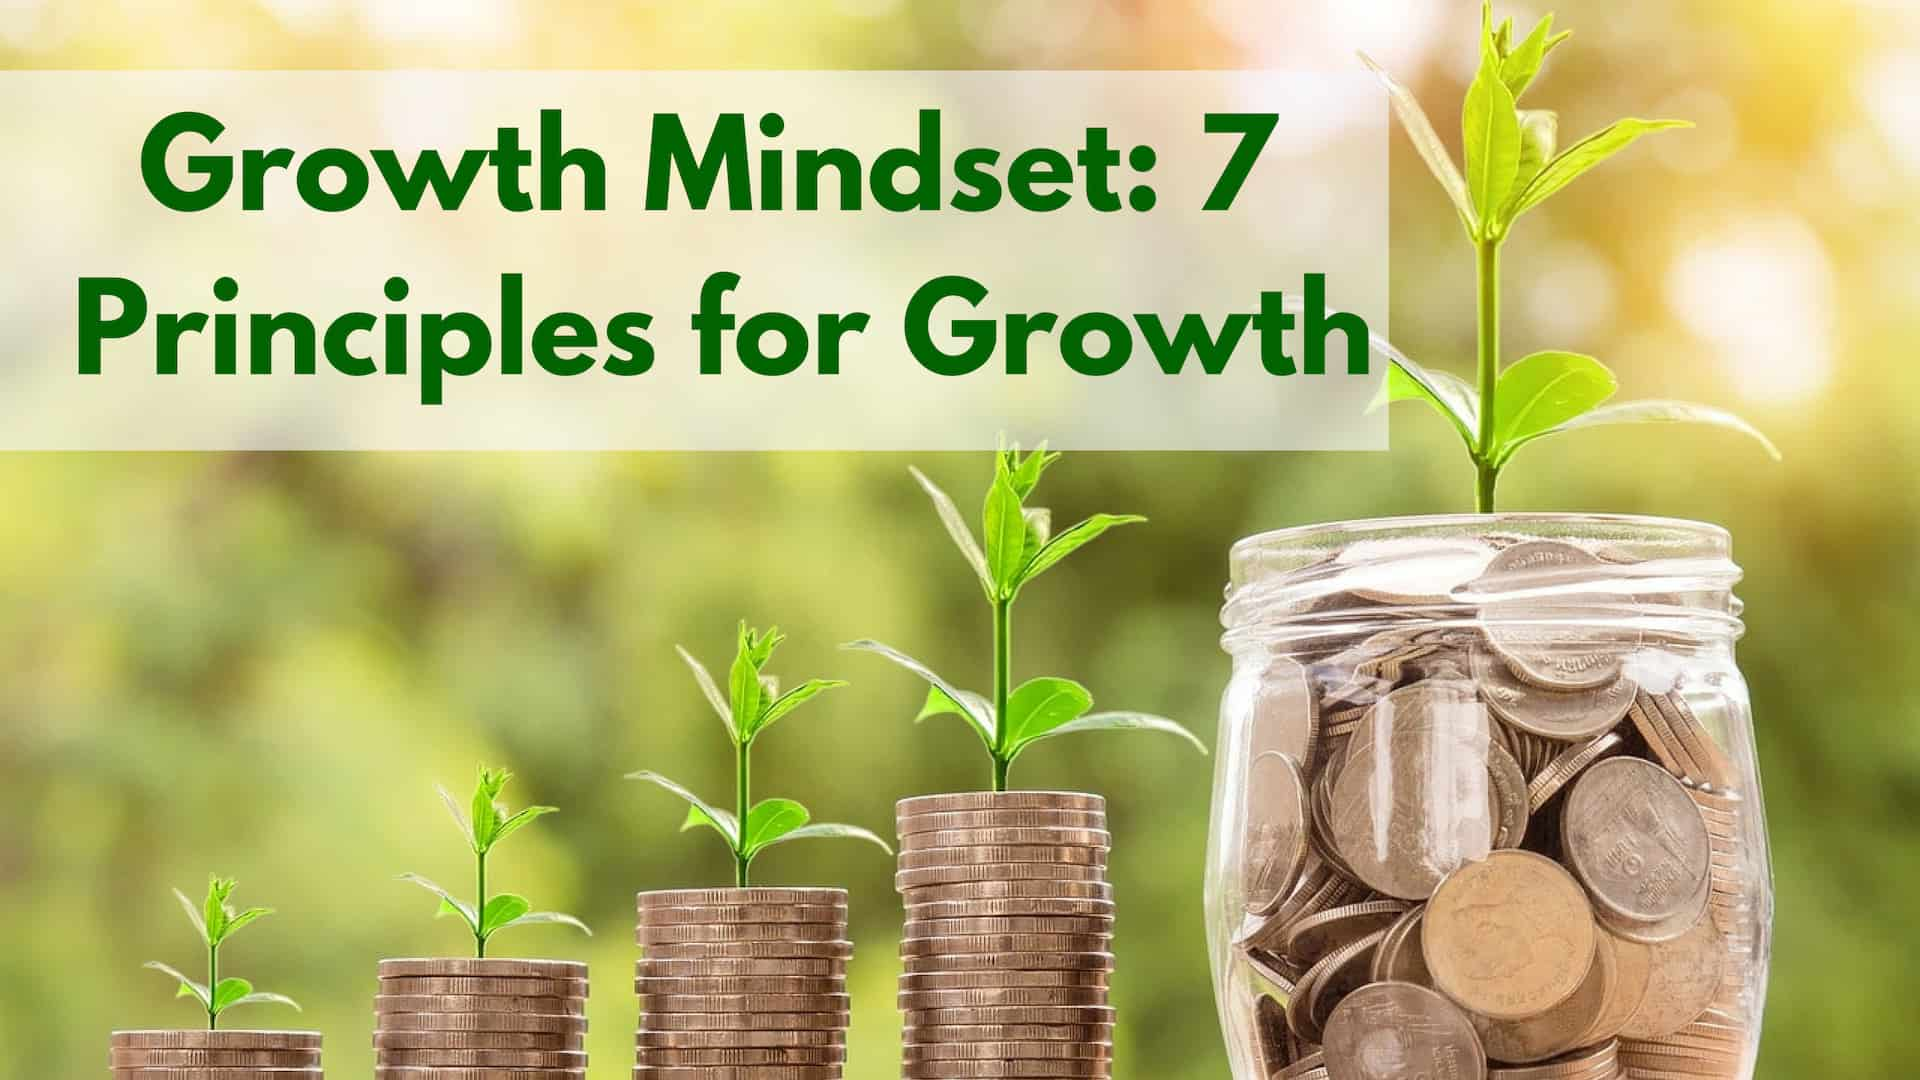 Growth Mindset: 7 Principles For Growth